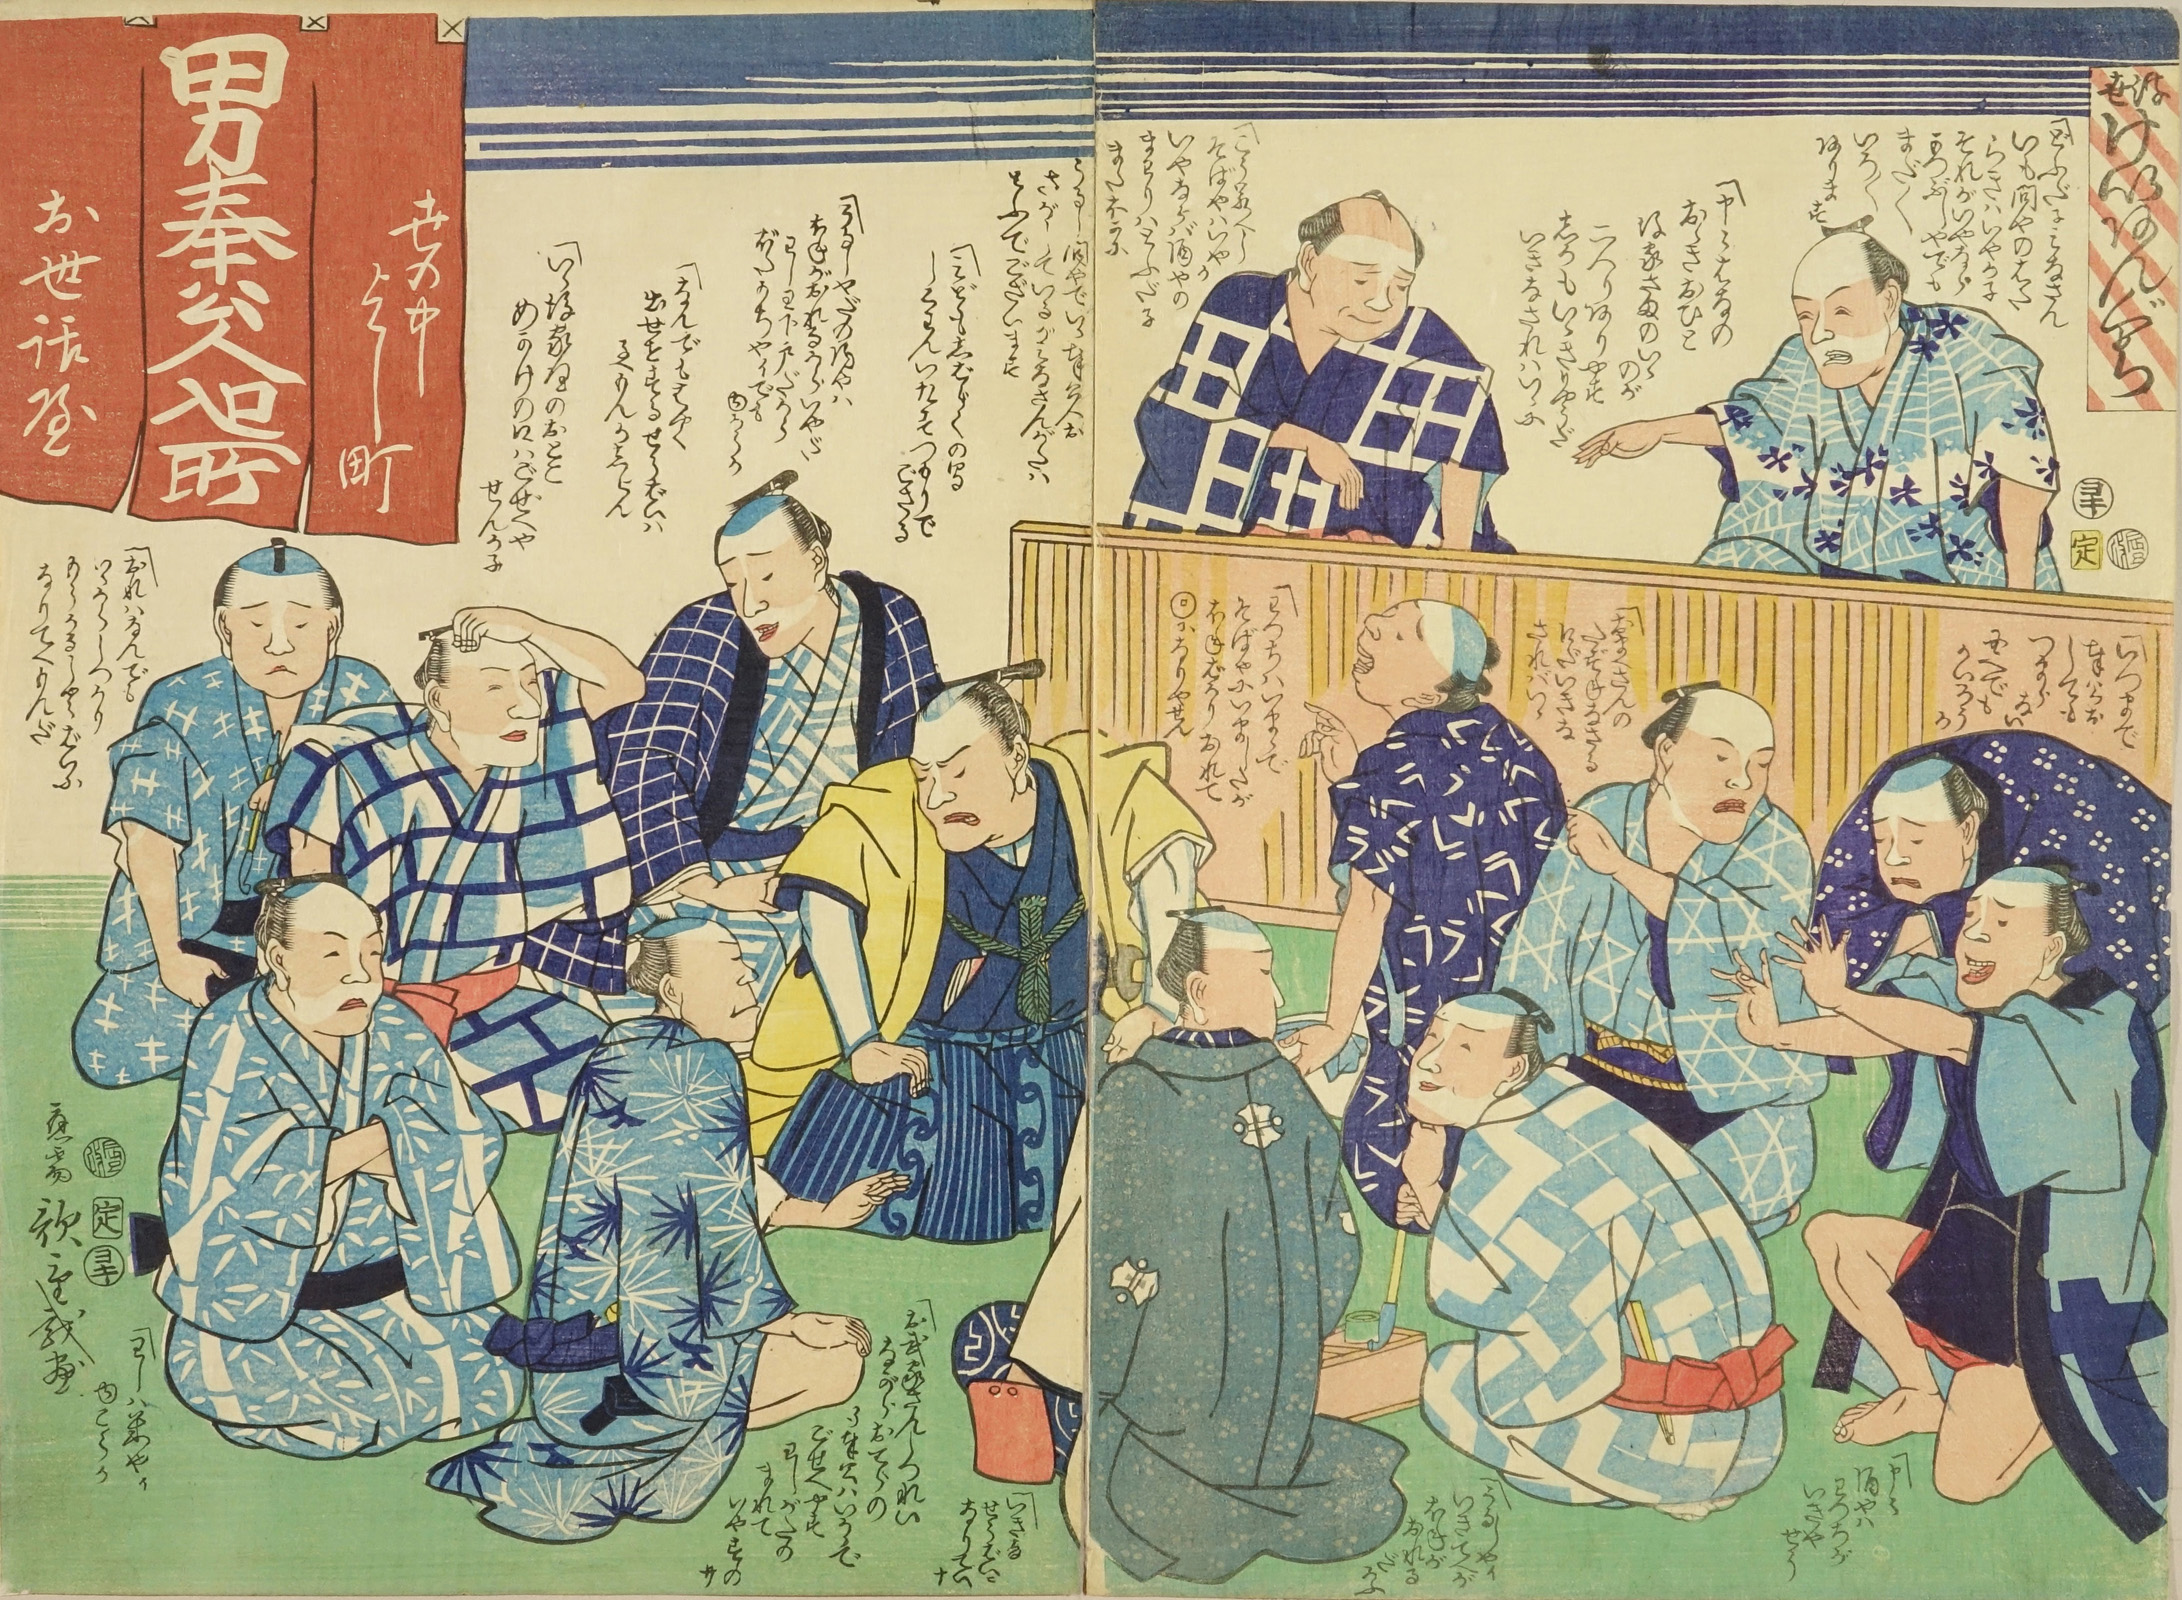 Utashige Satire Print Of Boshin War Diptych Japanese Ukiyo E